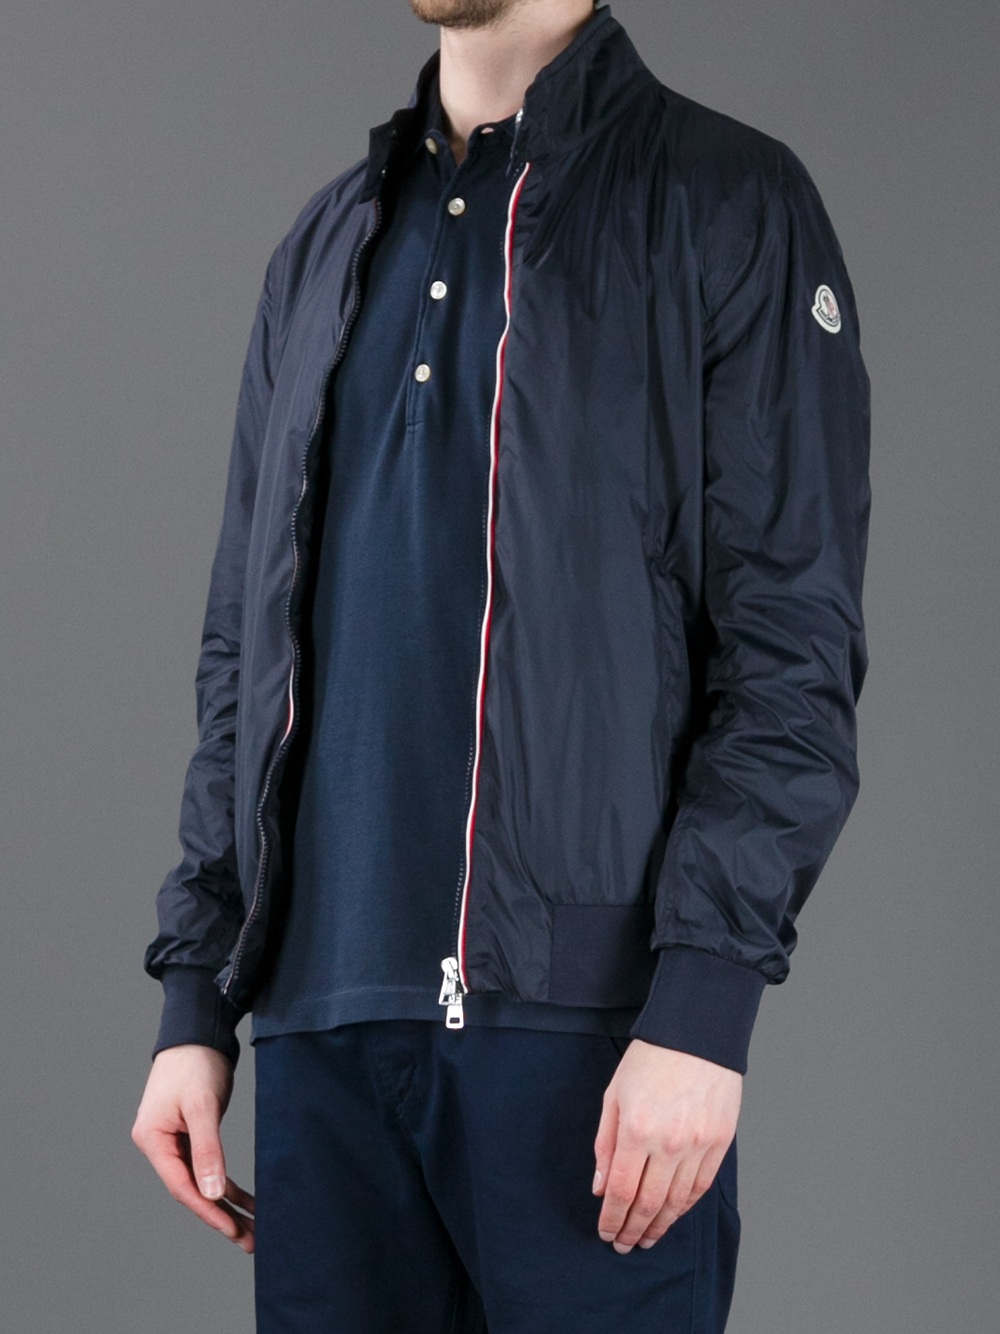 are moncler down jackets waterproof